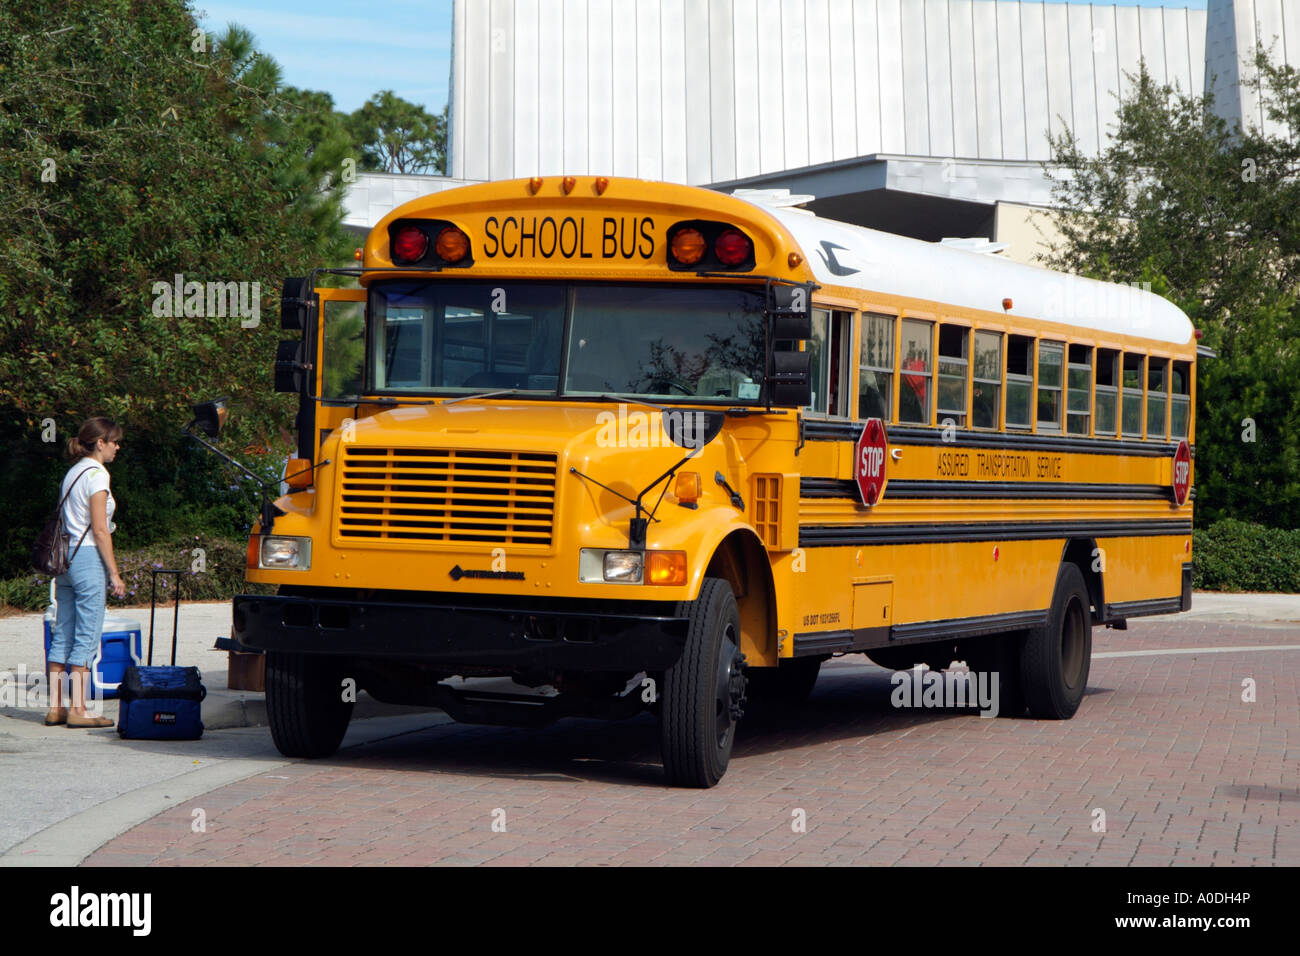 Thomas Built Buses >> School Bus Yellow American bus USA Used to transport American Stock Photo, Royalty Free Image ...